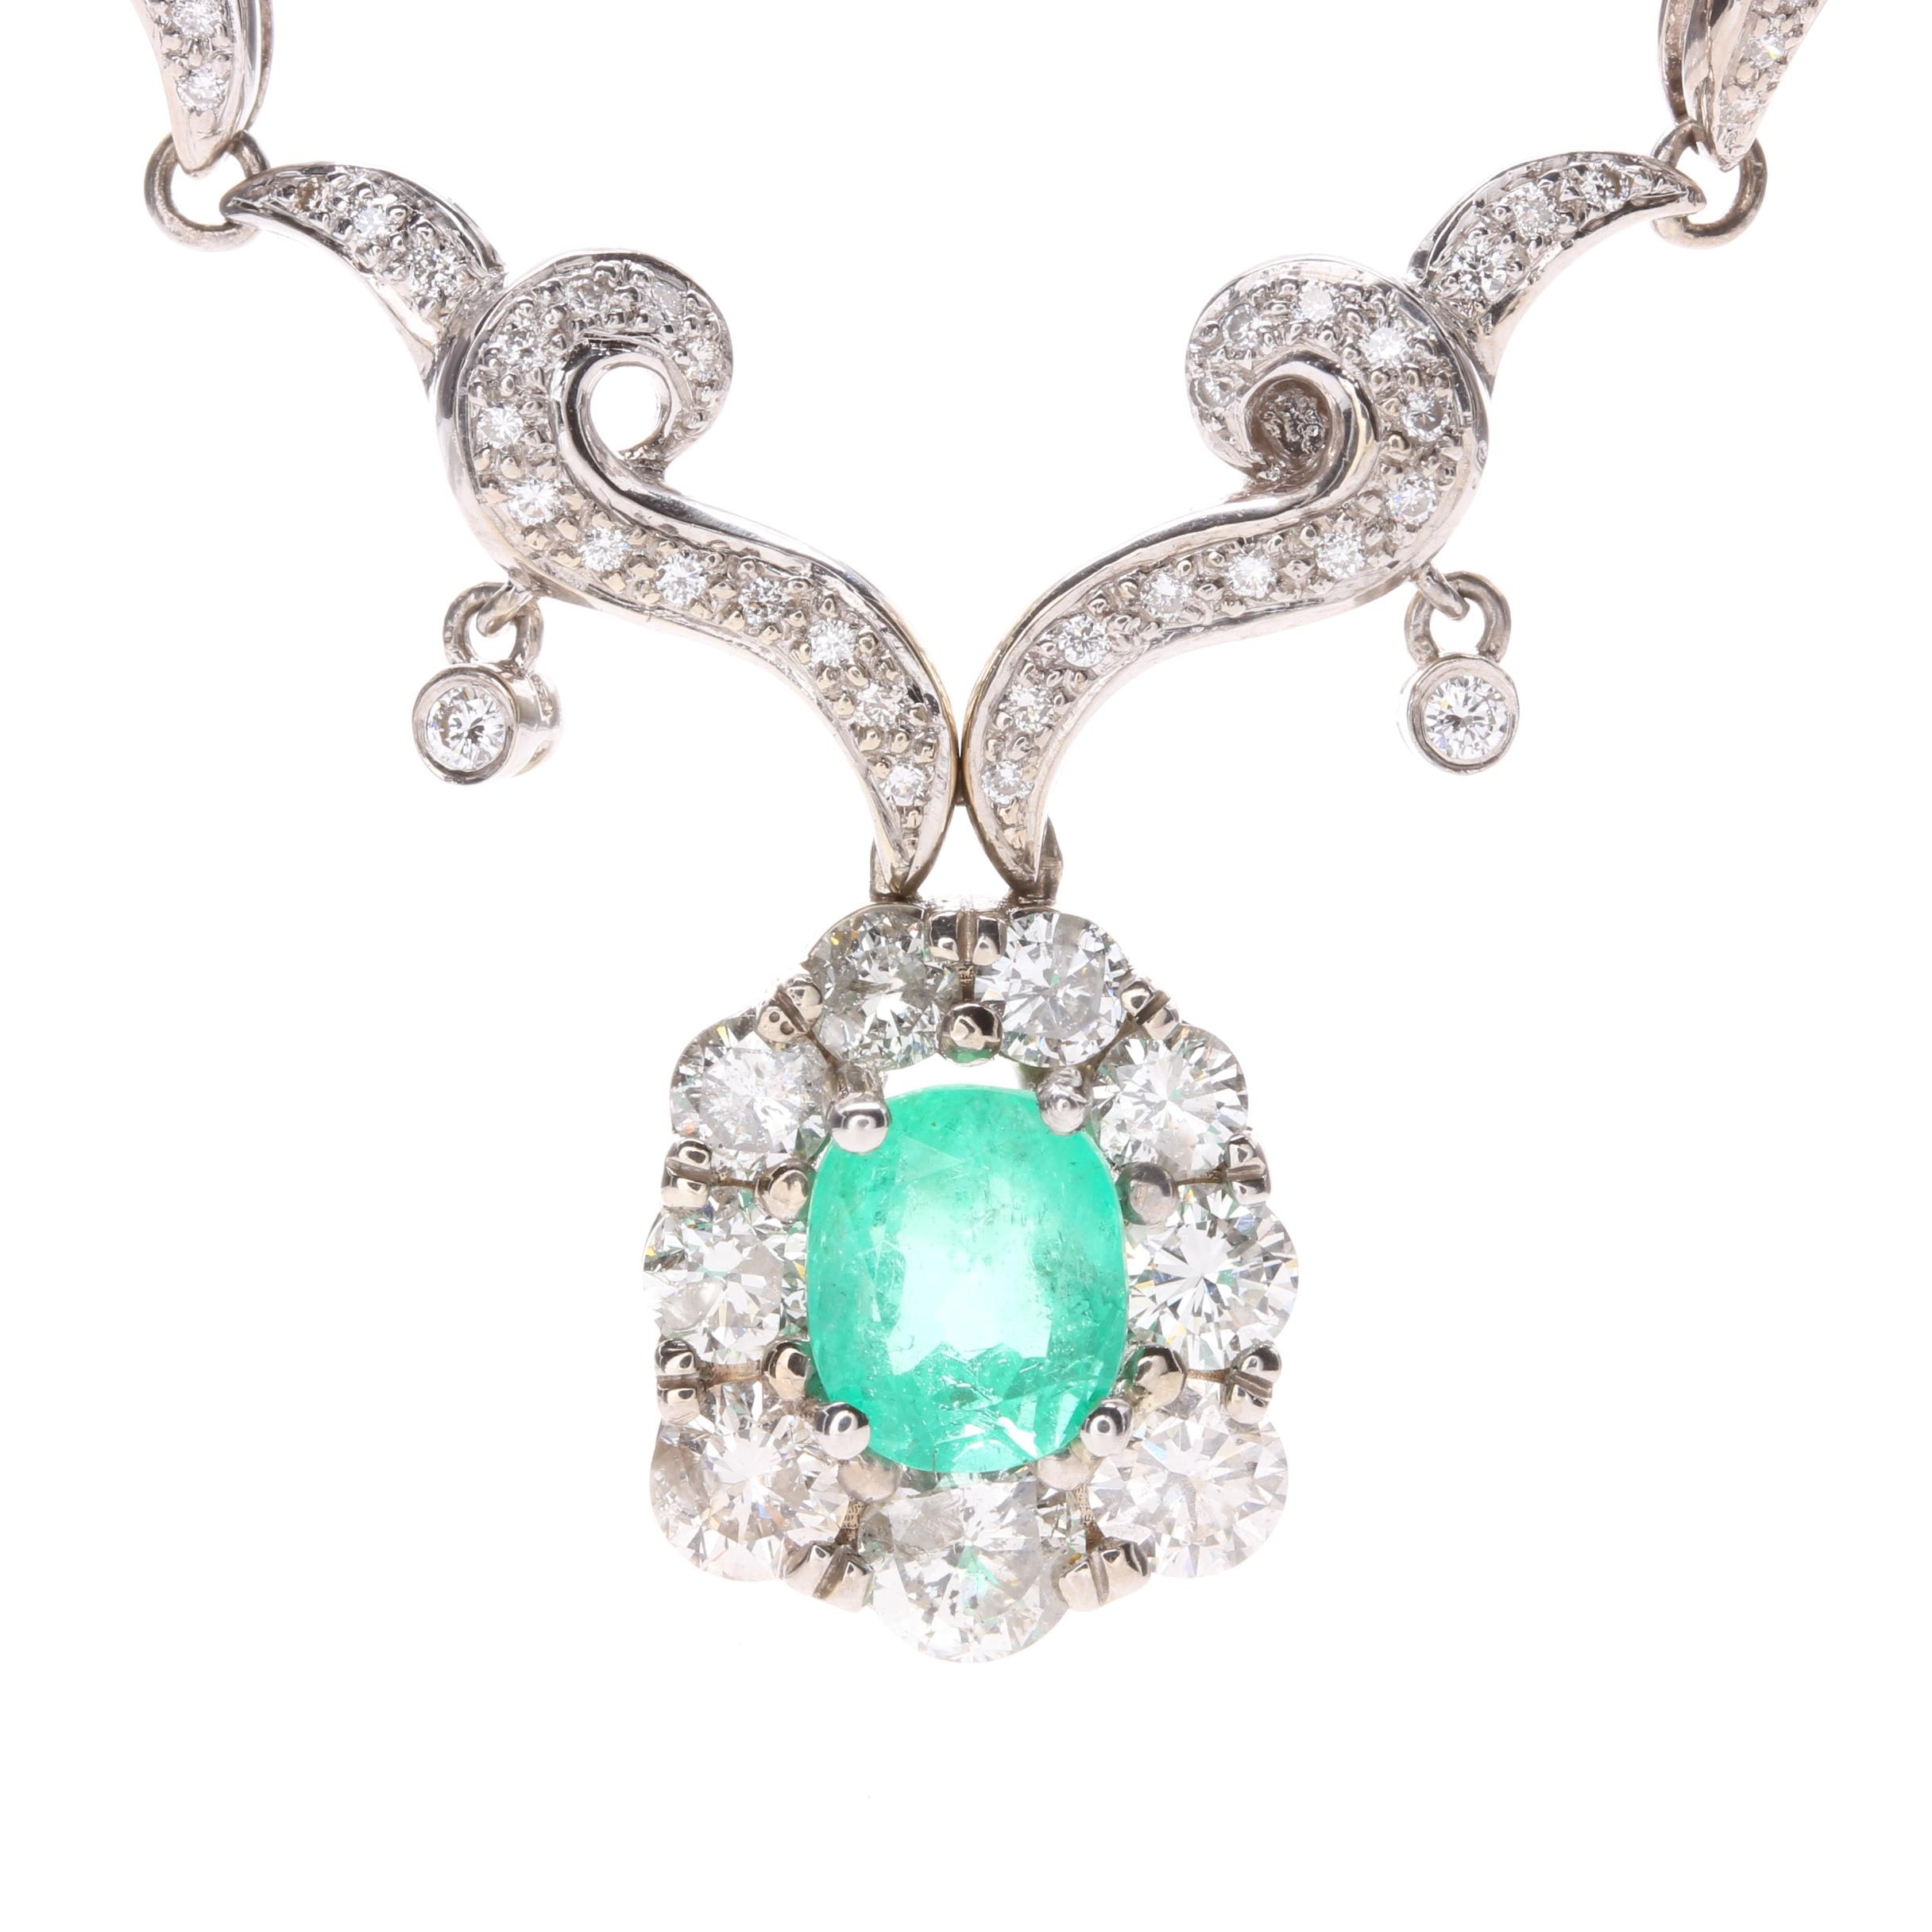 18K White Gold 1.69 CT Emerald and 2.37 CTW Diamond Necklace